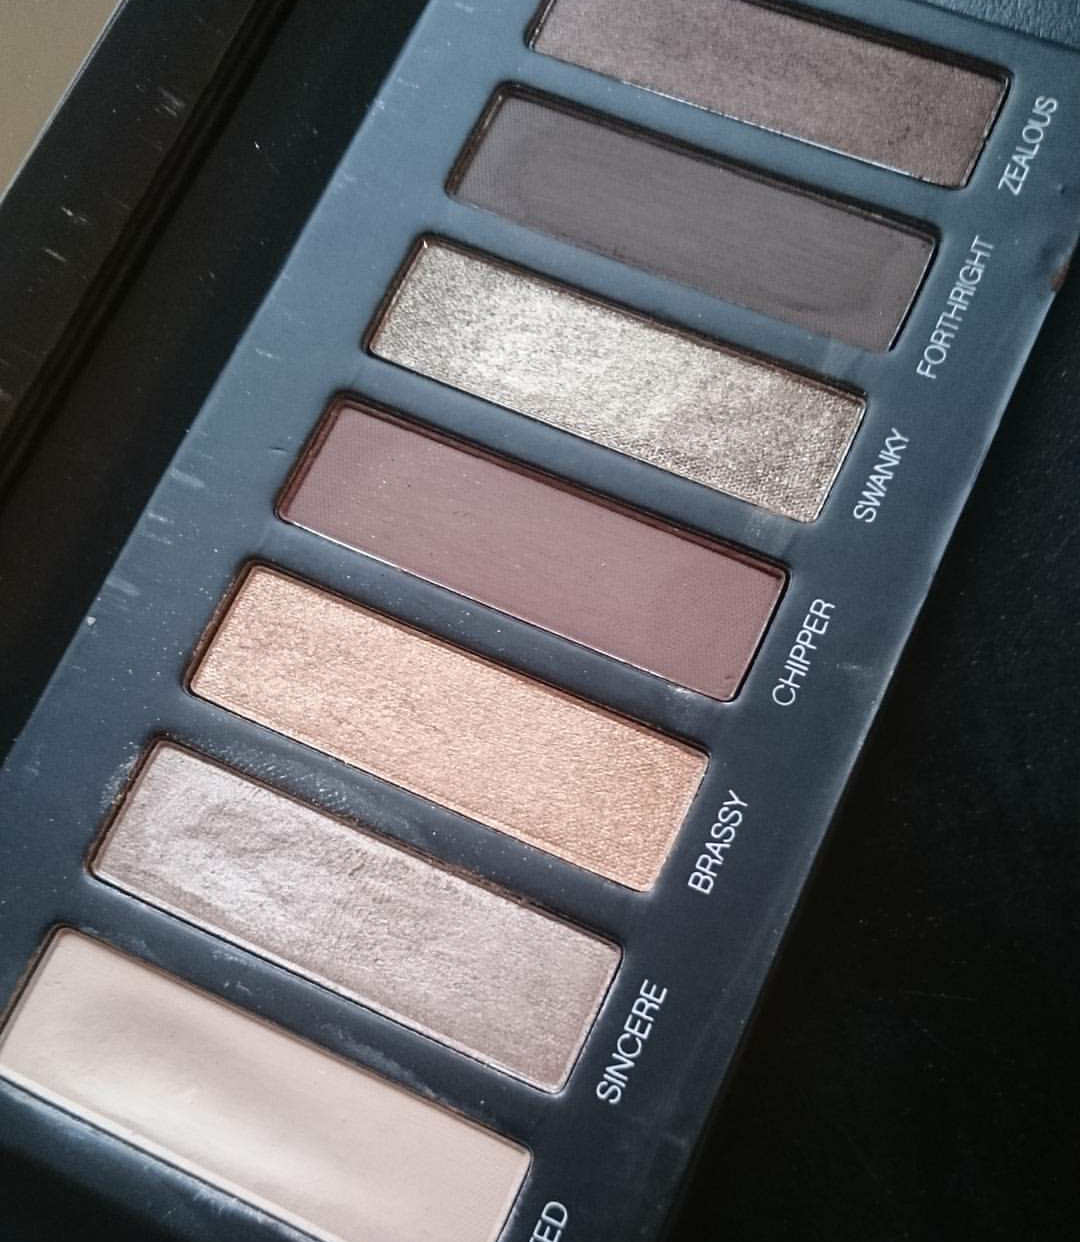 Younique Addiction Moodstruck 1 Eyeshadow Palette Review